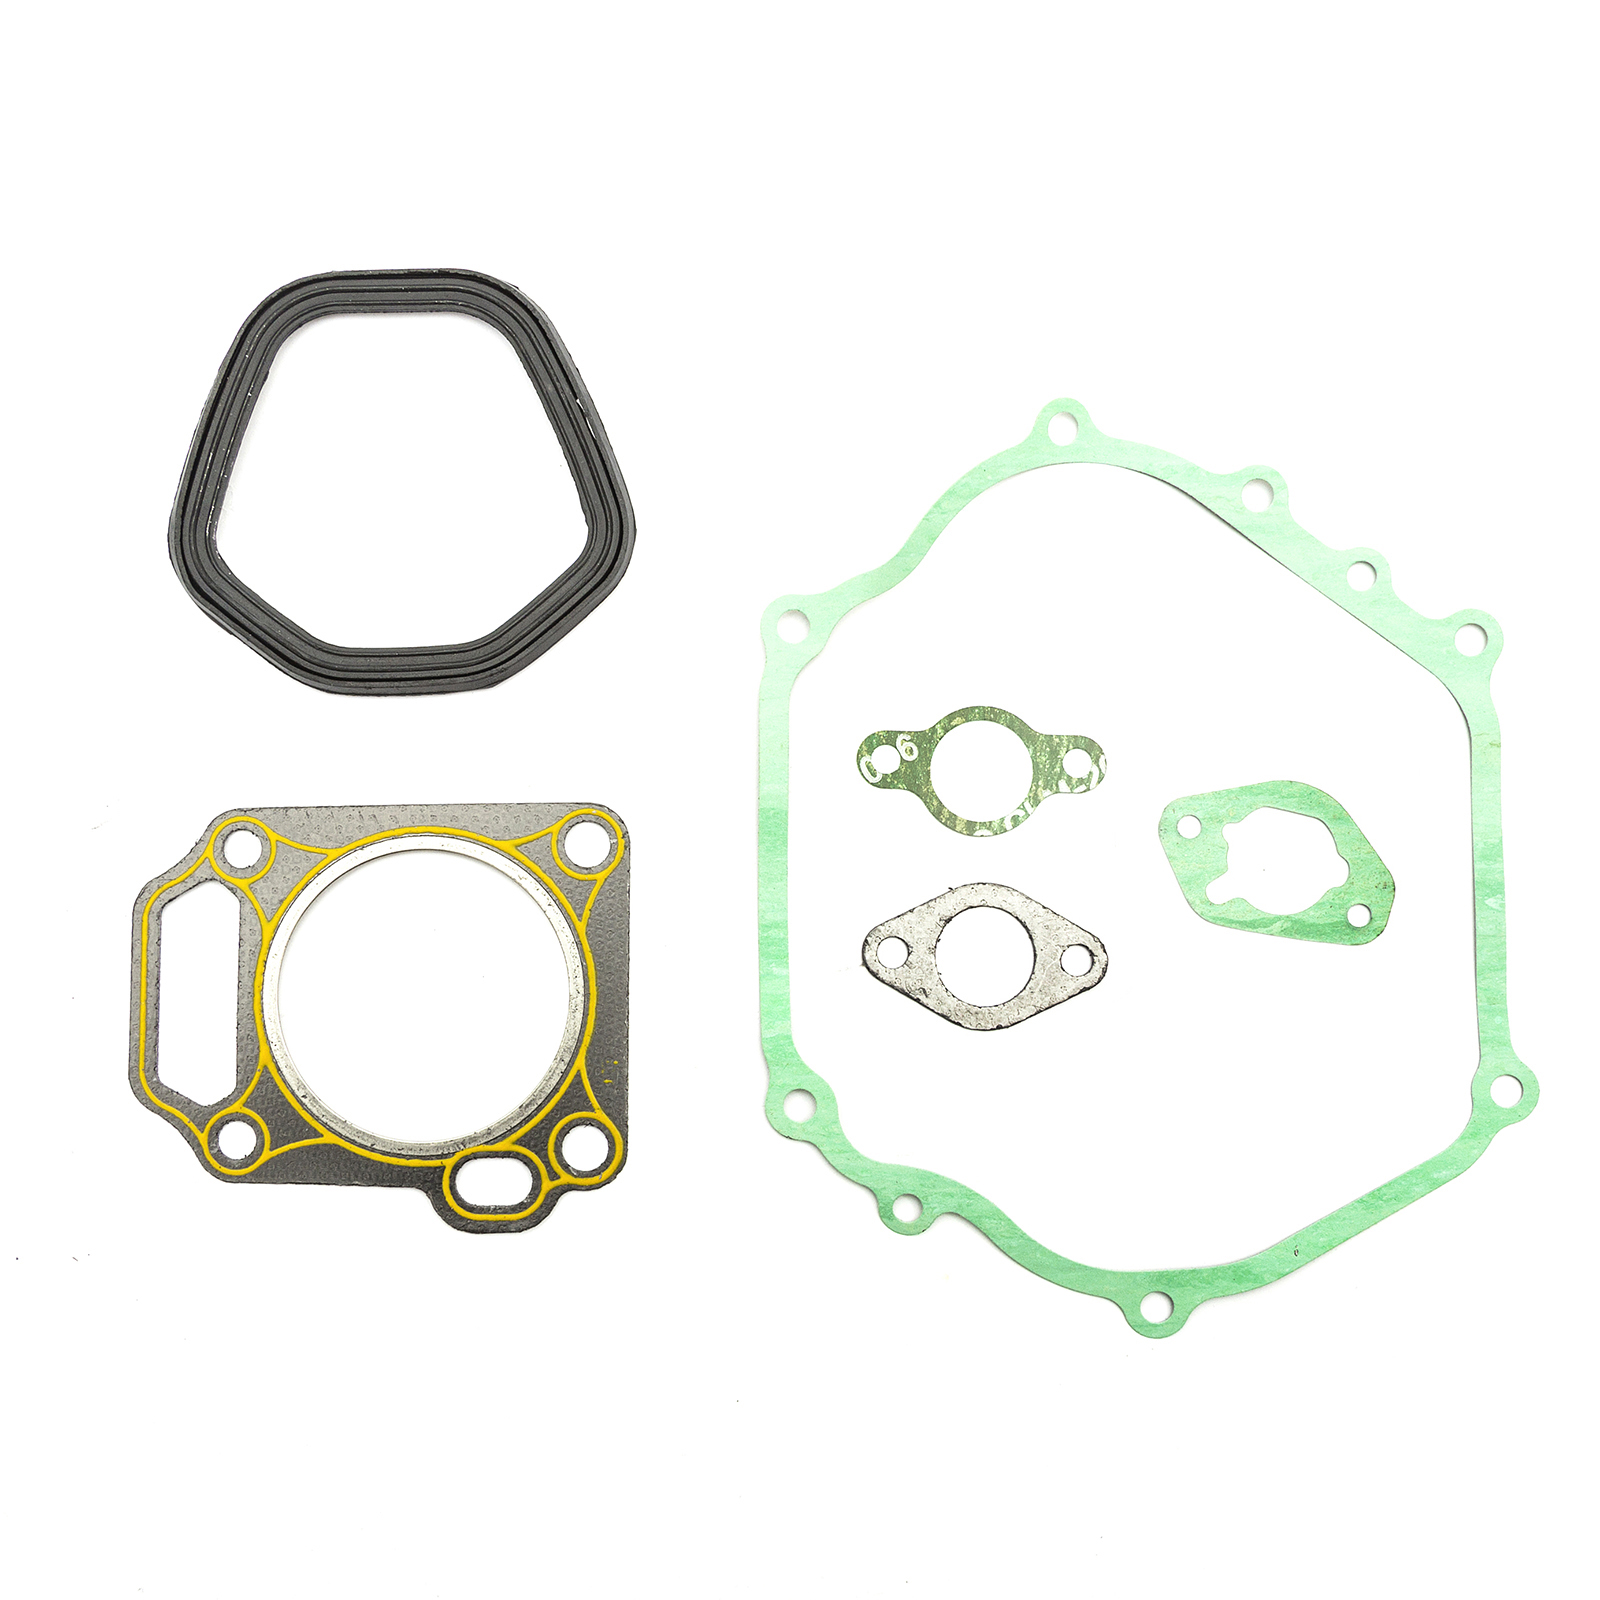 Complete Gasket Set Fits Honda GX270 Engine GoKarts Non Genuine Piston Kit